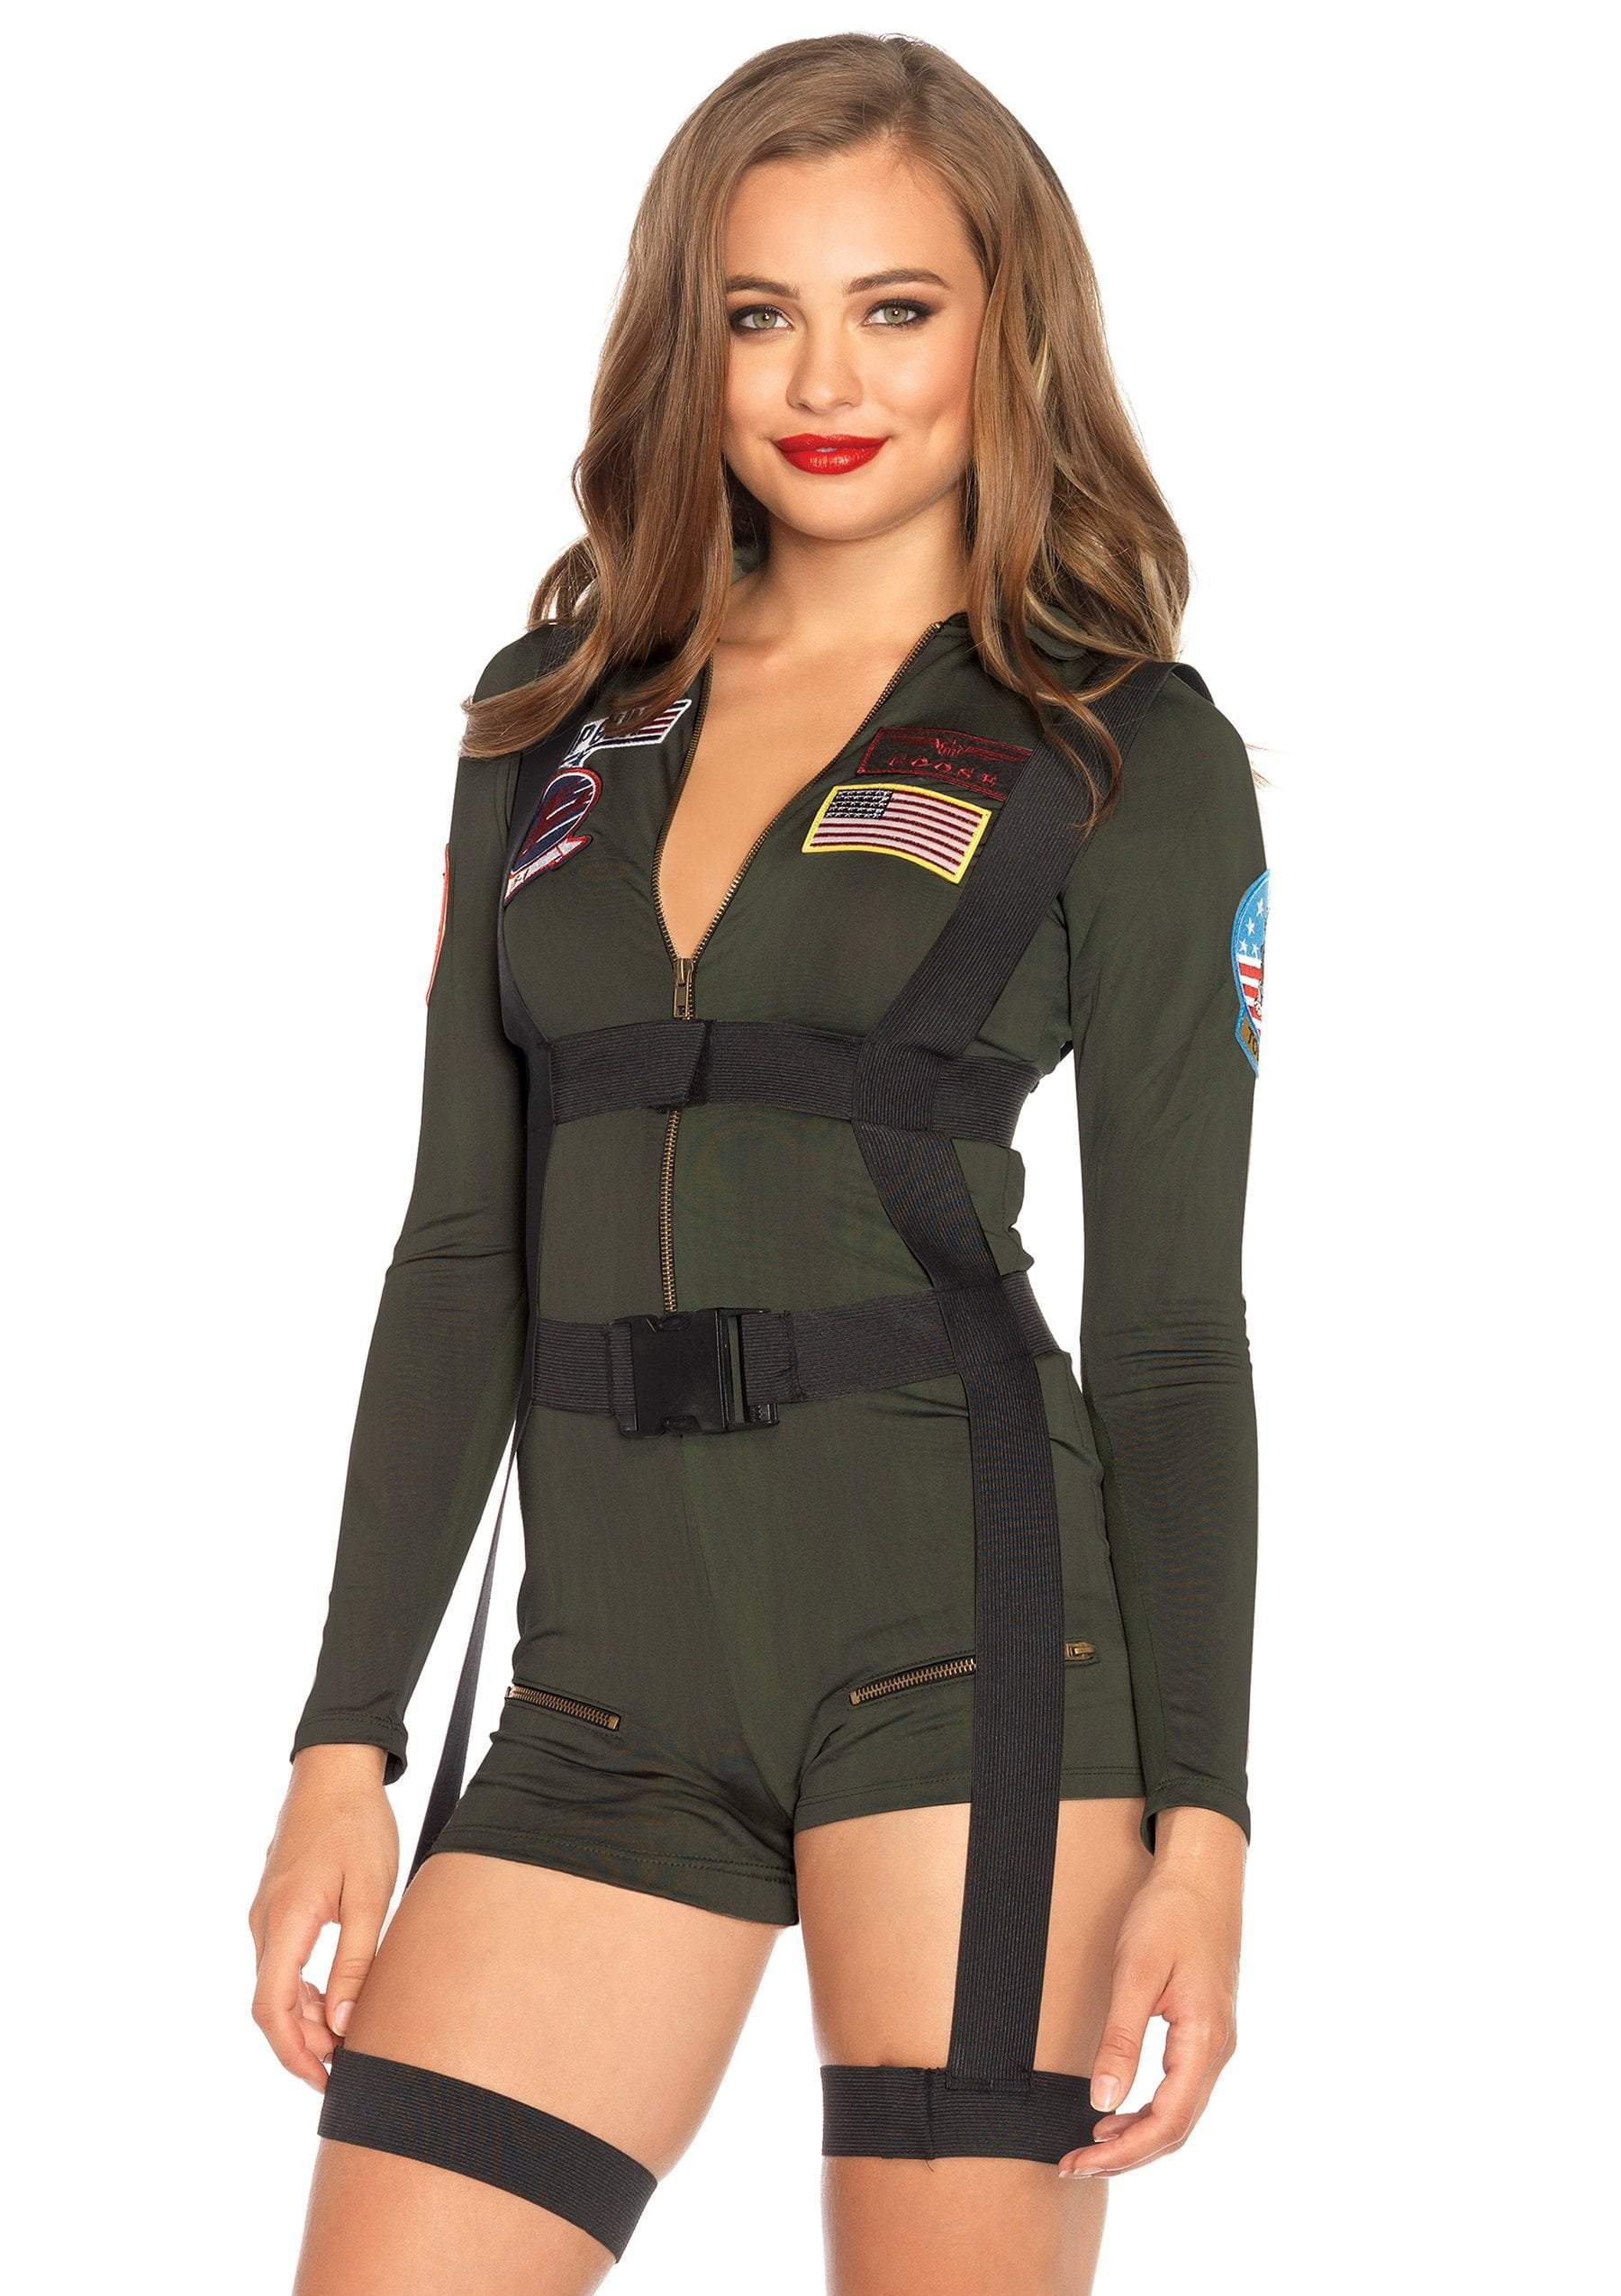 Leg Avenue costumes LARGE Top Gun Romper Costume